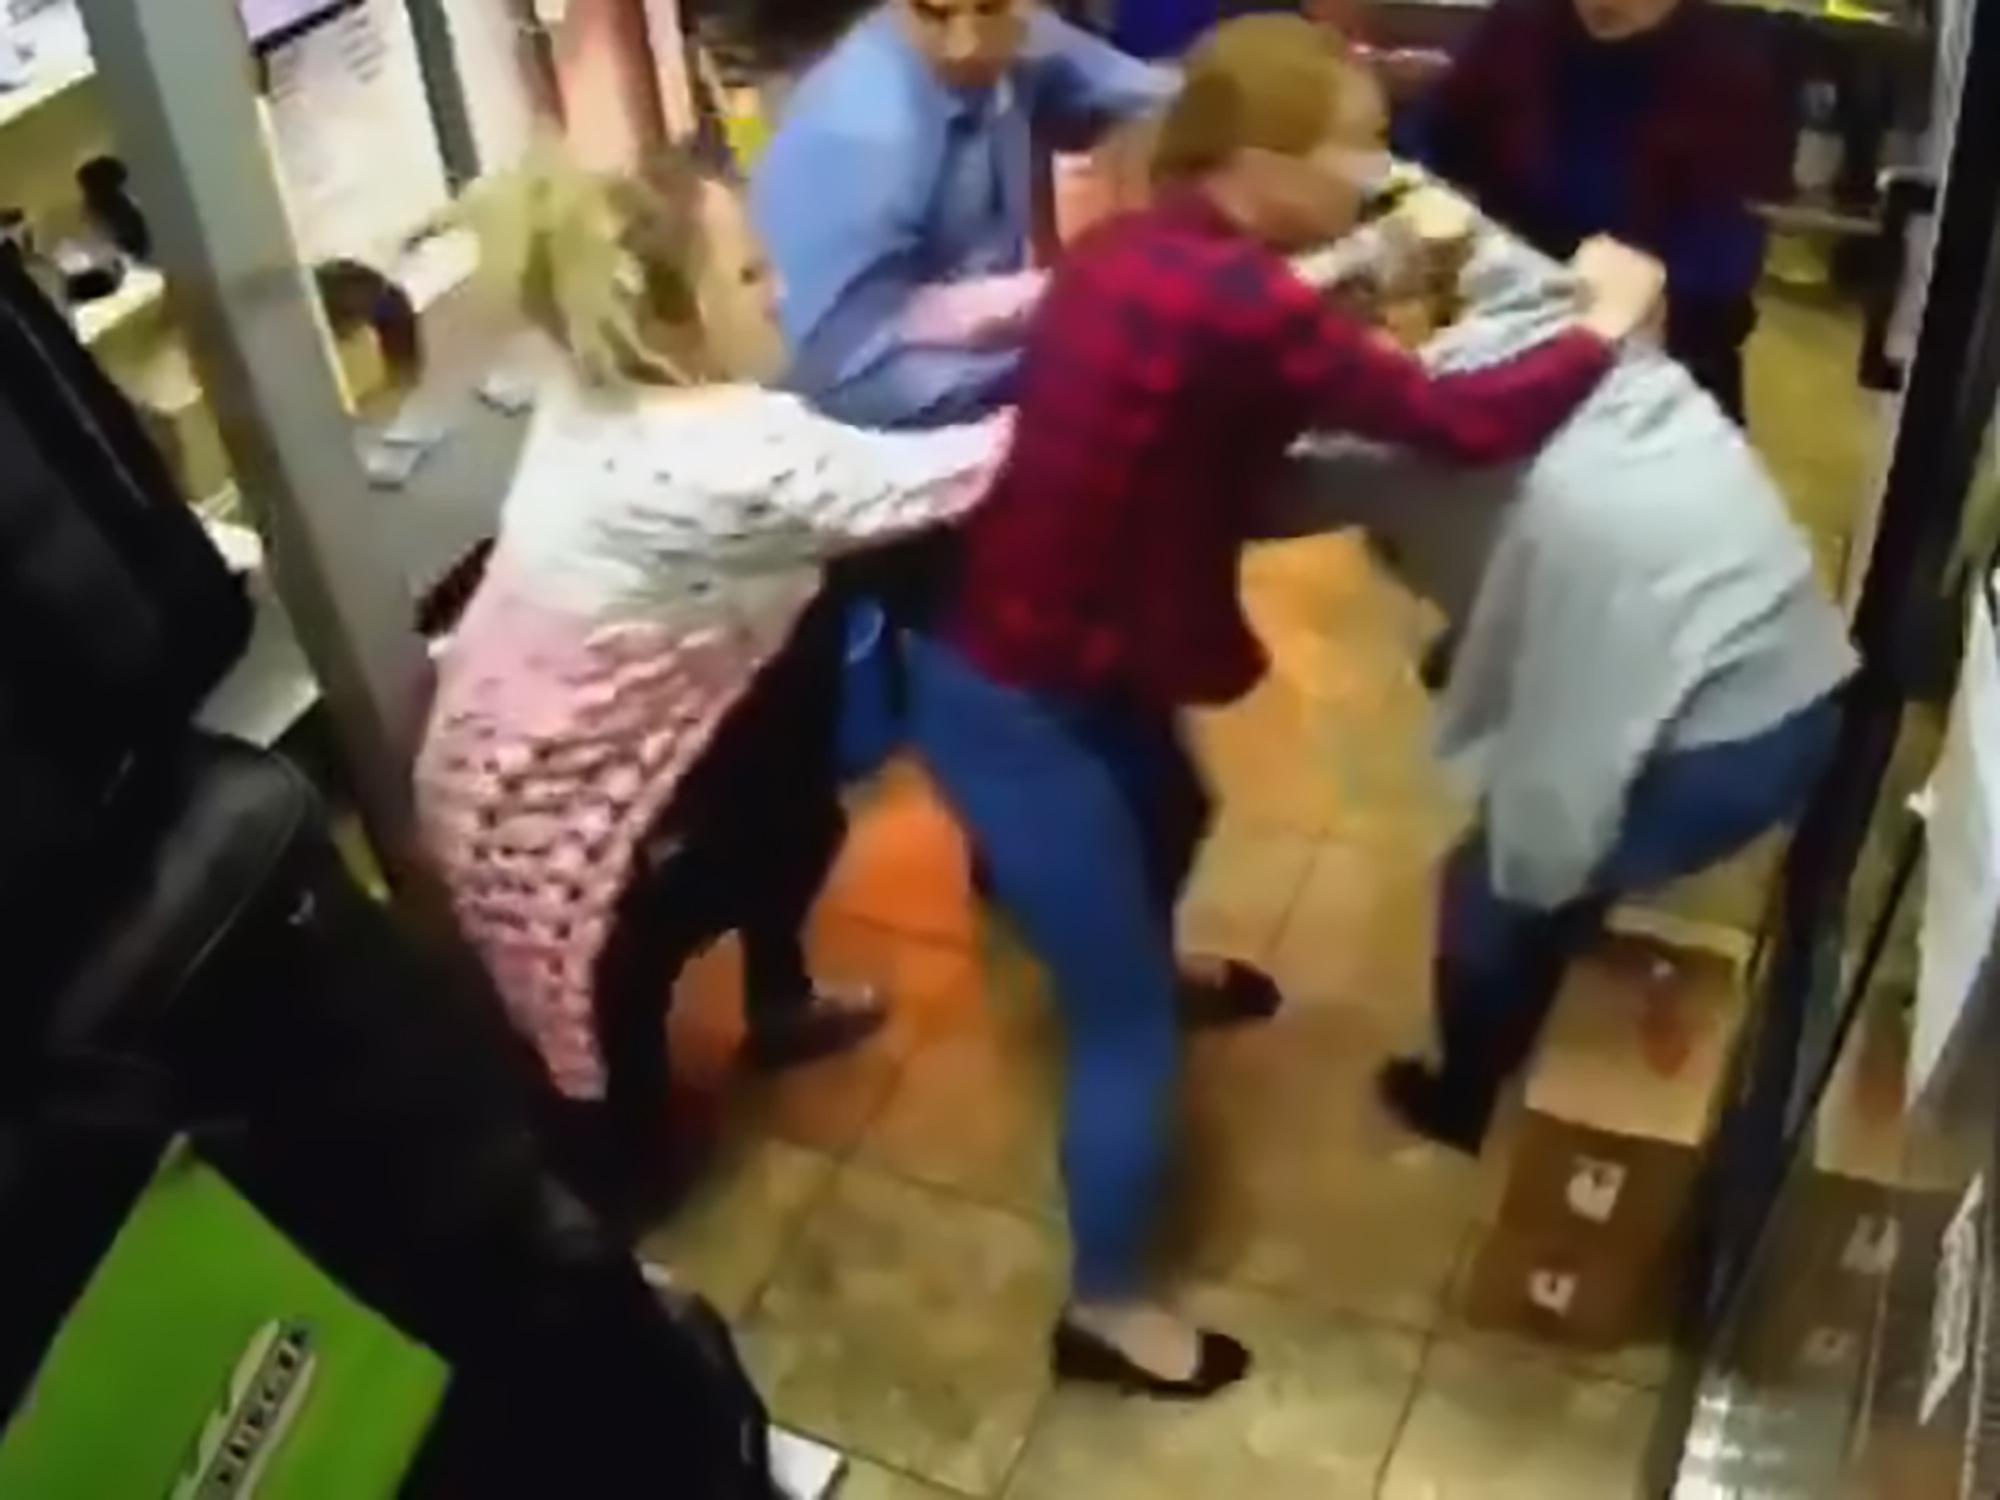 Woman Attacks Staff After Losing Out On Job At Fast Food Restaurant